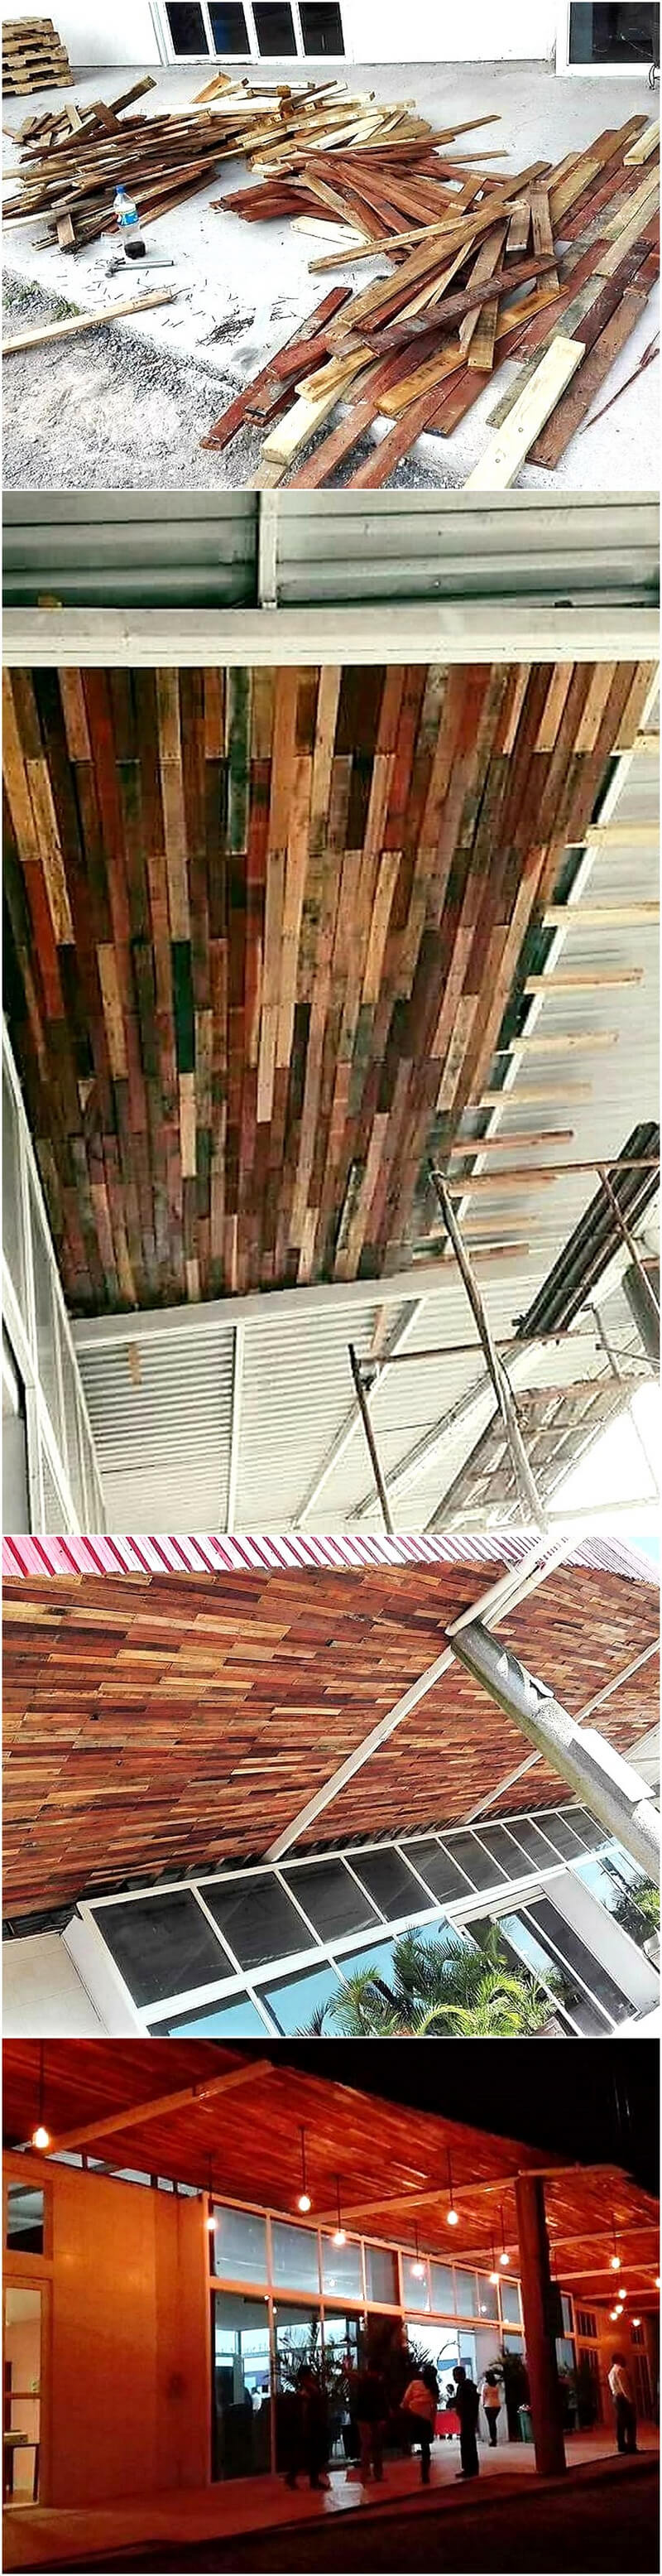 DIY wooden pallet roof ceiling